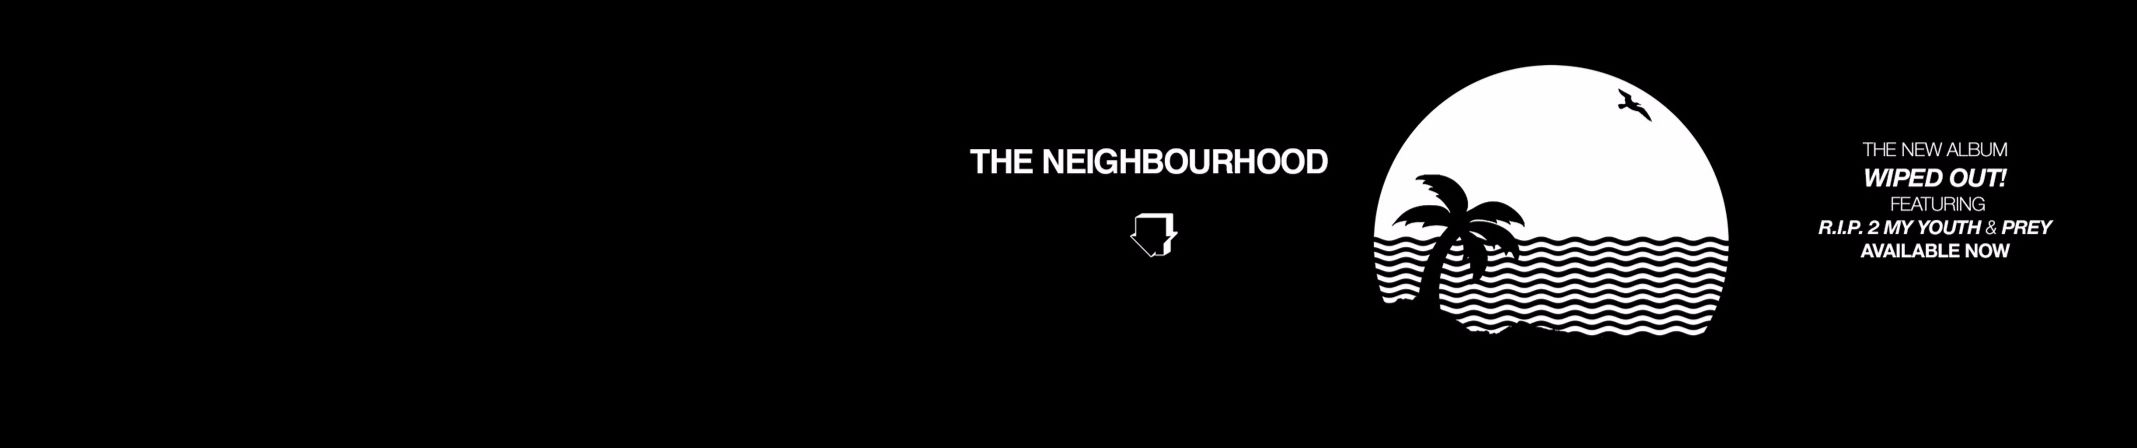 the neighbourhood wiped out torrent